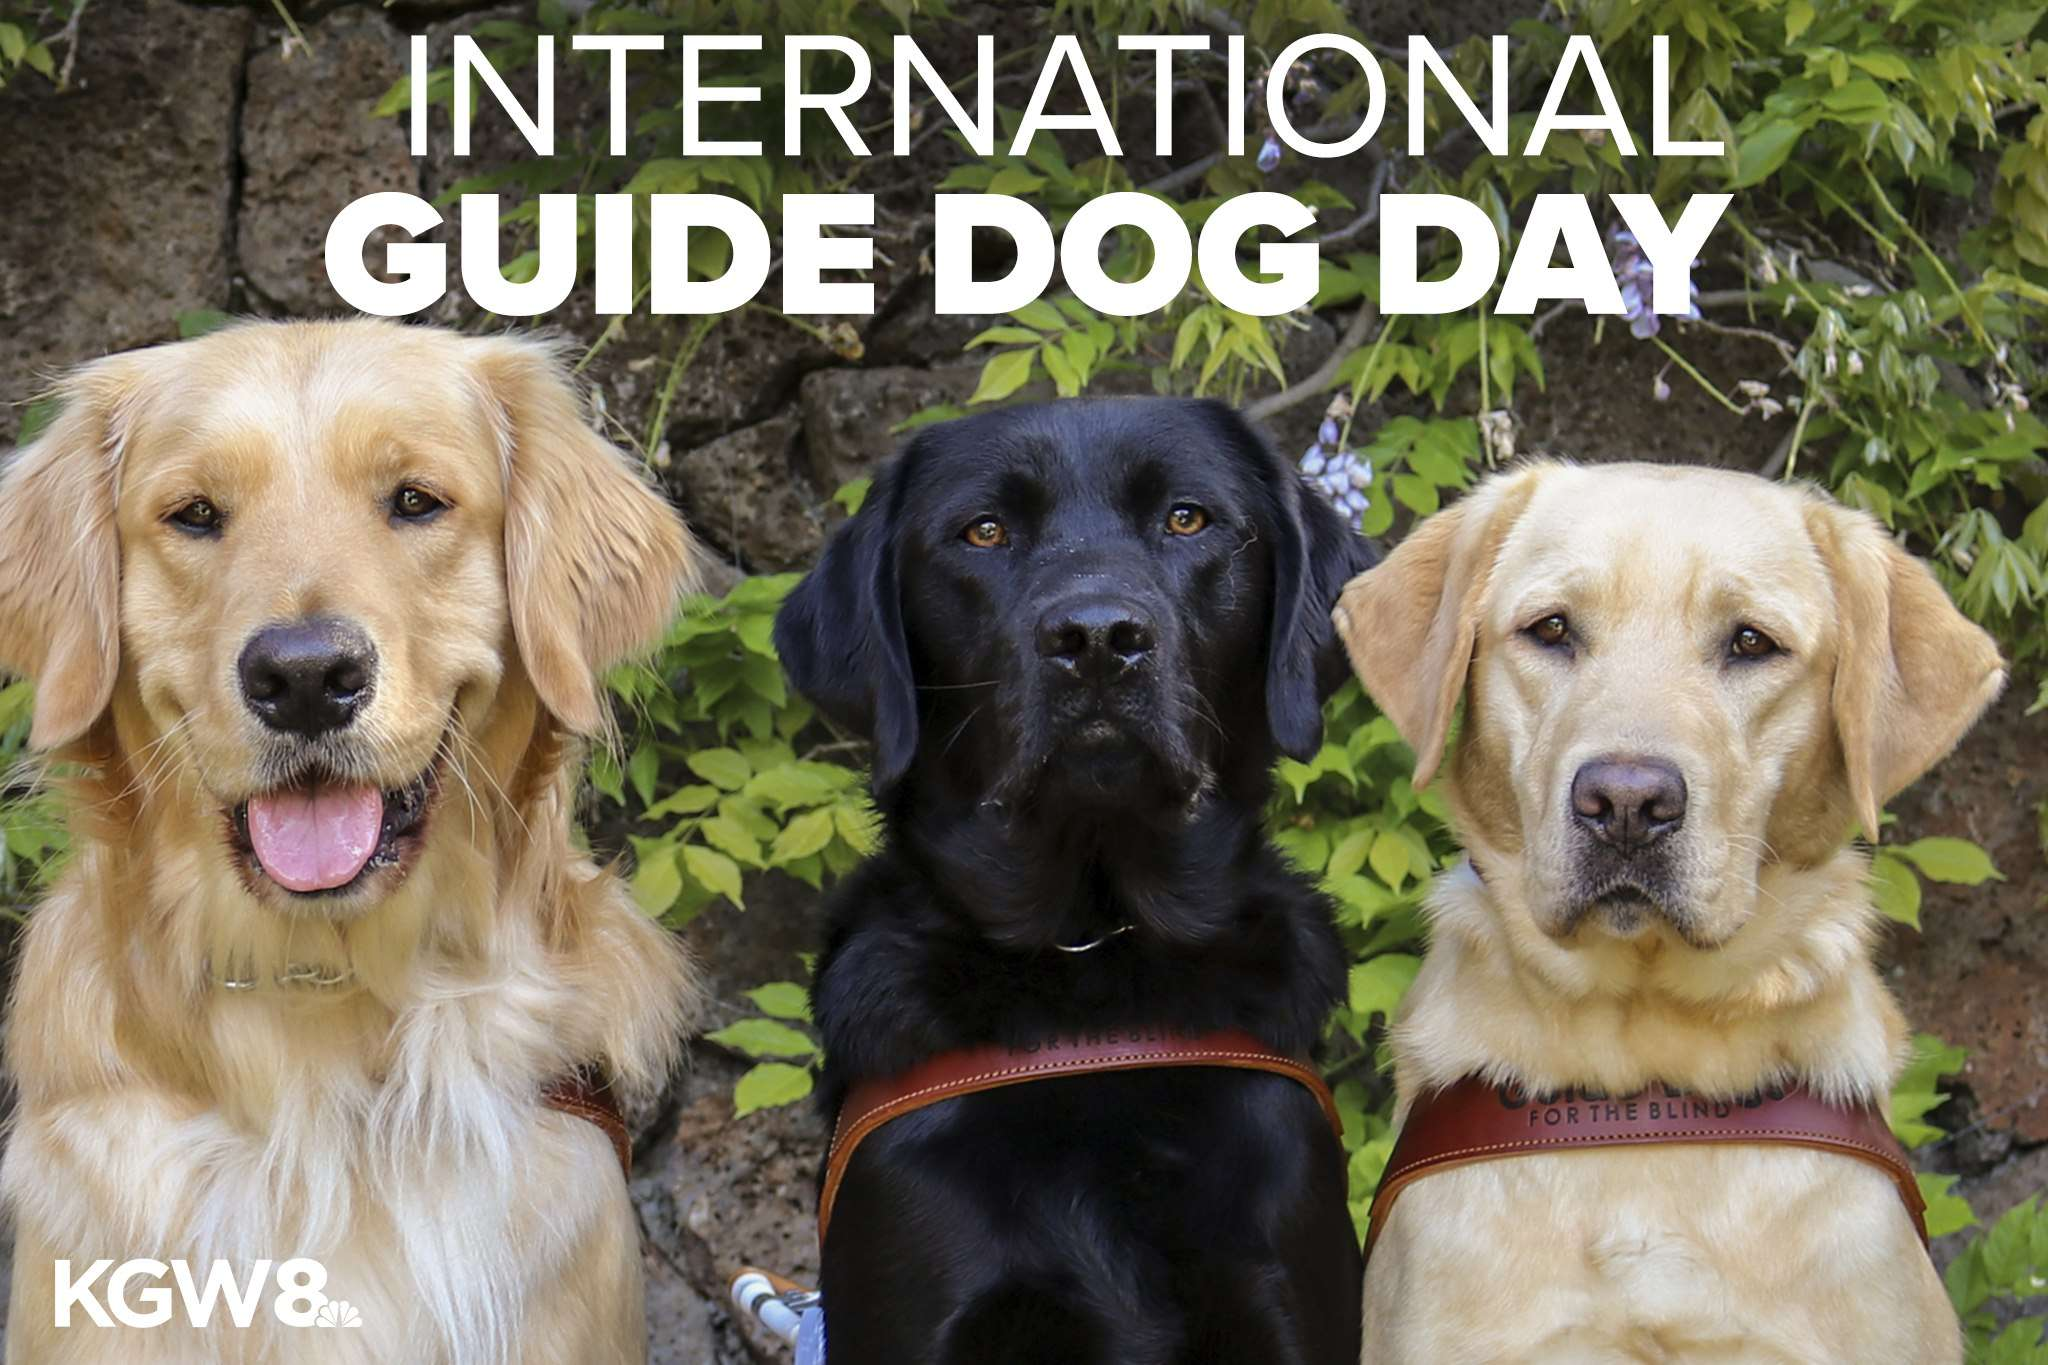 International Guide Dog Day Wishes